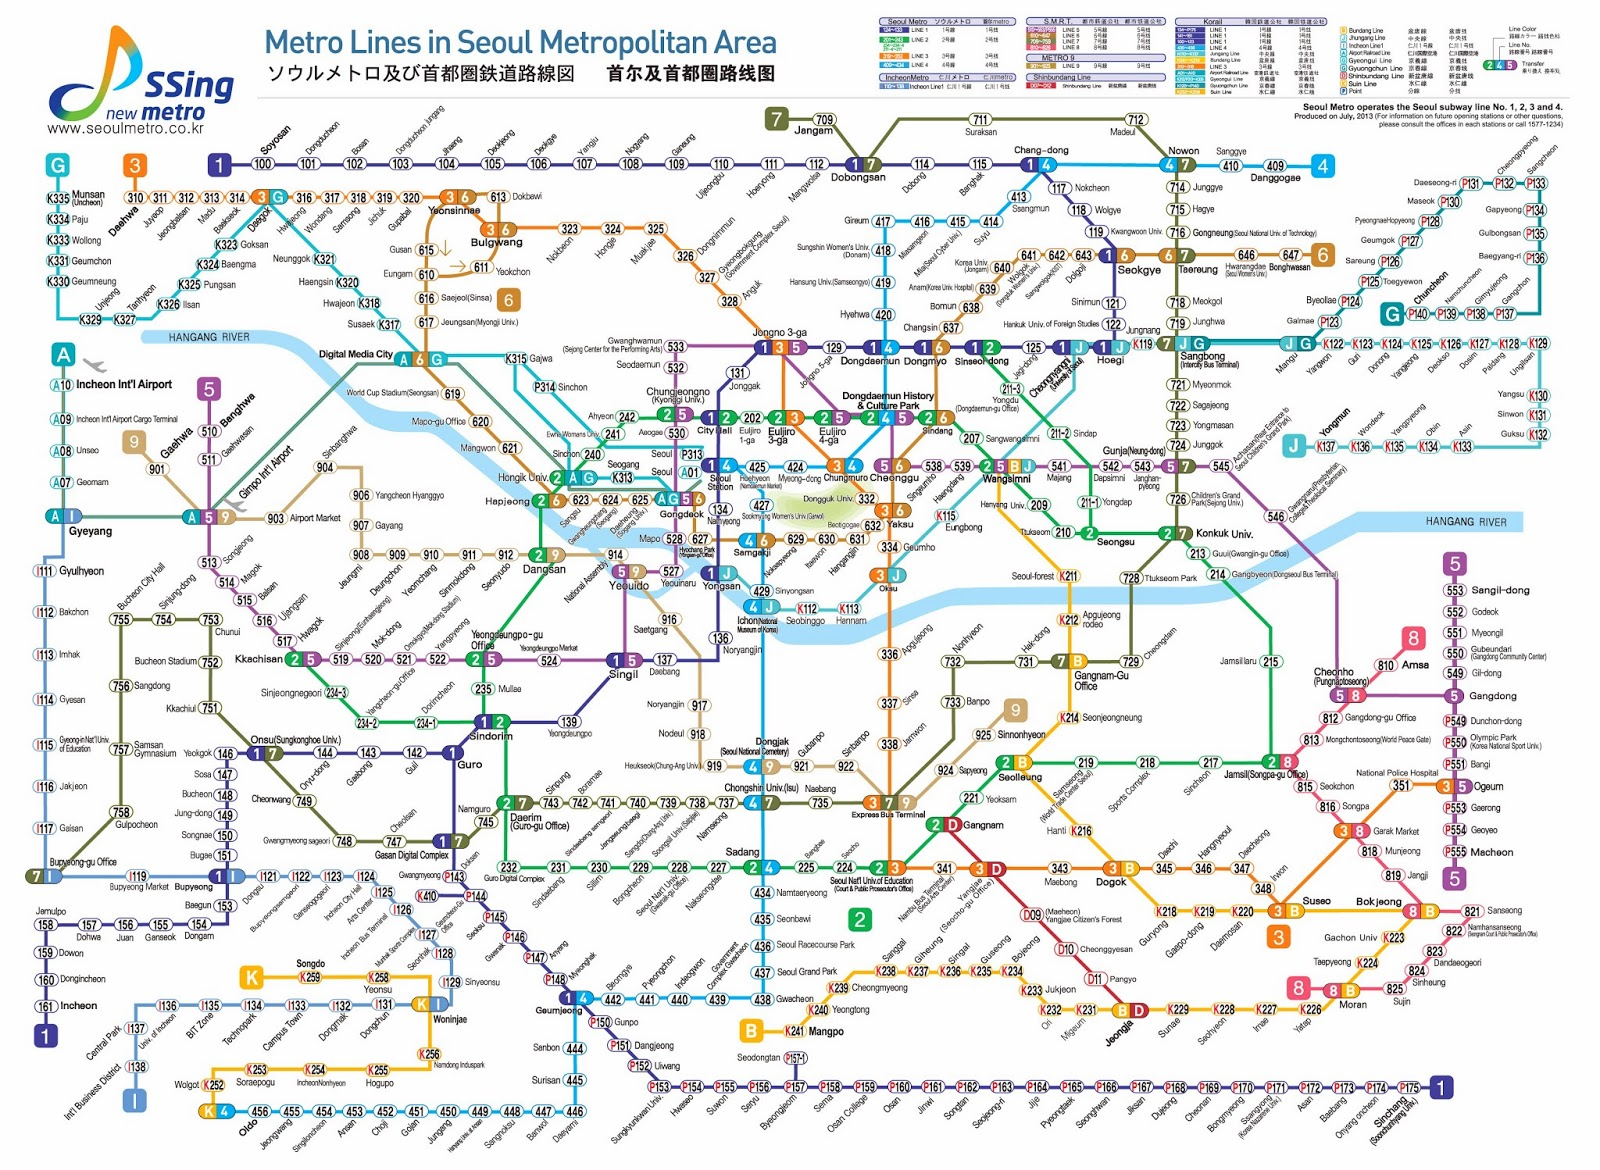 Seoul Subway Map English 2014.Wifi Korea Official Blog The Cheapest Way To Stay Connected